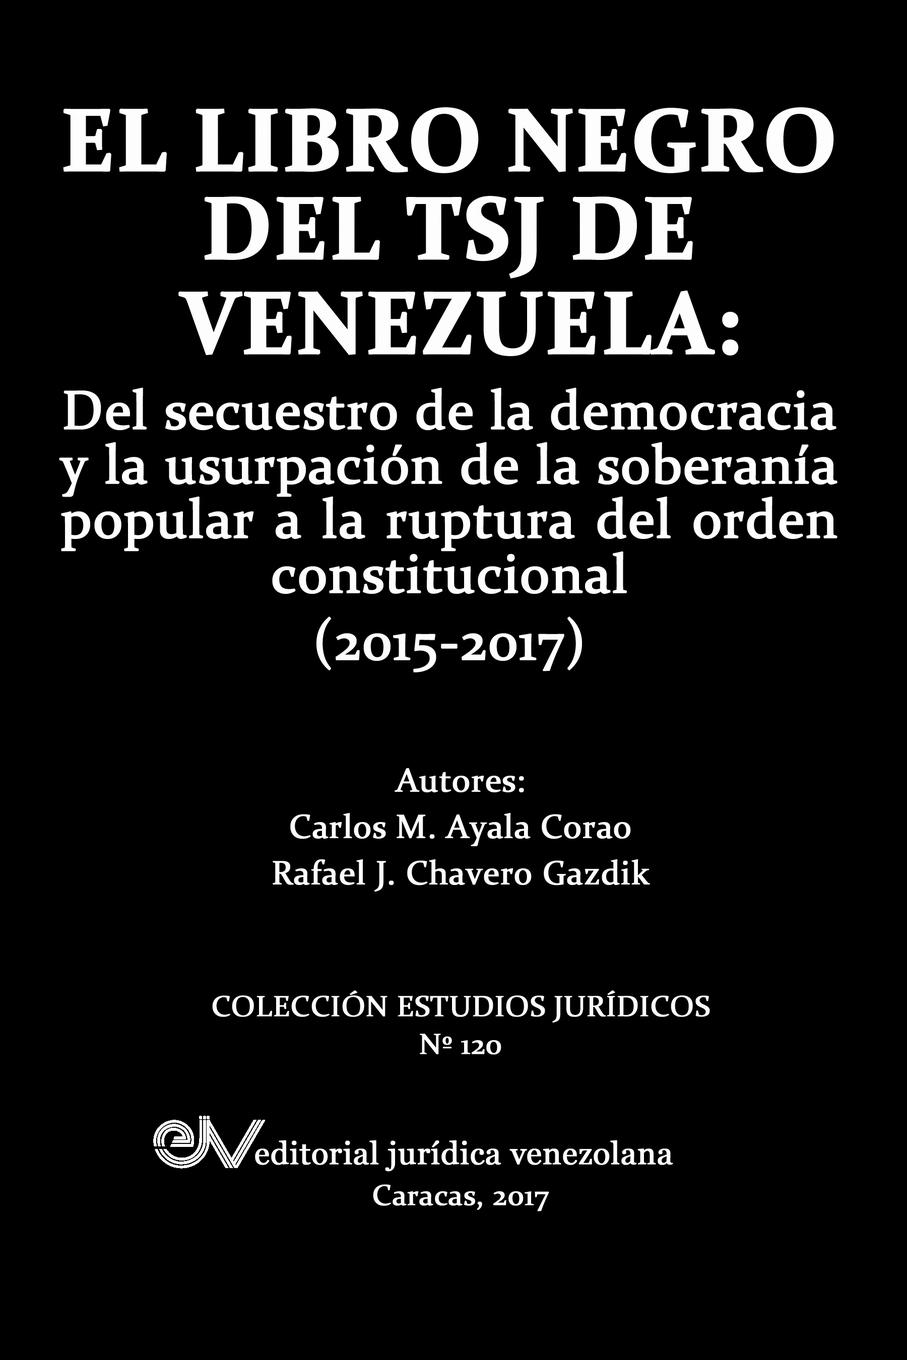 Carlos AYALA CORAO, Rafael J. CHAVERO GAZDIK EL LIBRO NEGRO DEL TSJ DE VENEZUELA. Del secuestro de la democracia y la usurpacion de la soberania popu-lar a la ruptura del orden constitucional (2015-2017) luminarc десертная brush mania red 20 5 см